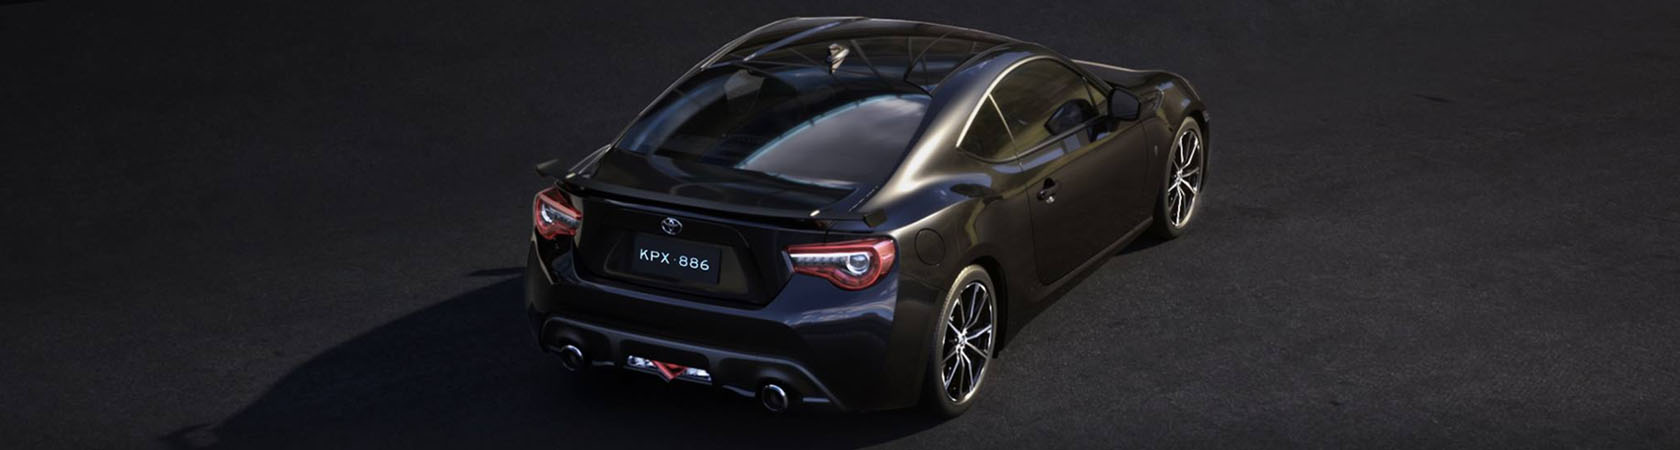 Phil Gilbert Toyota 86